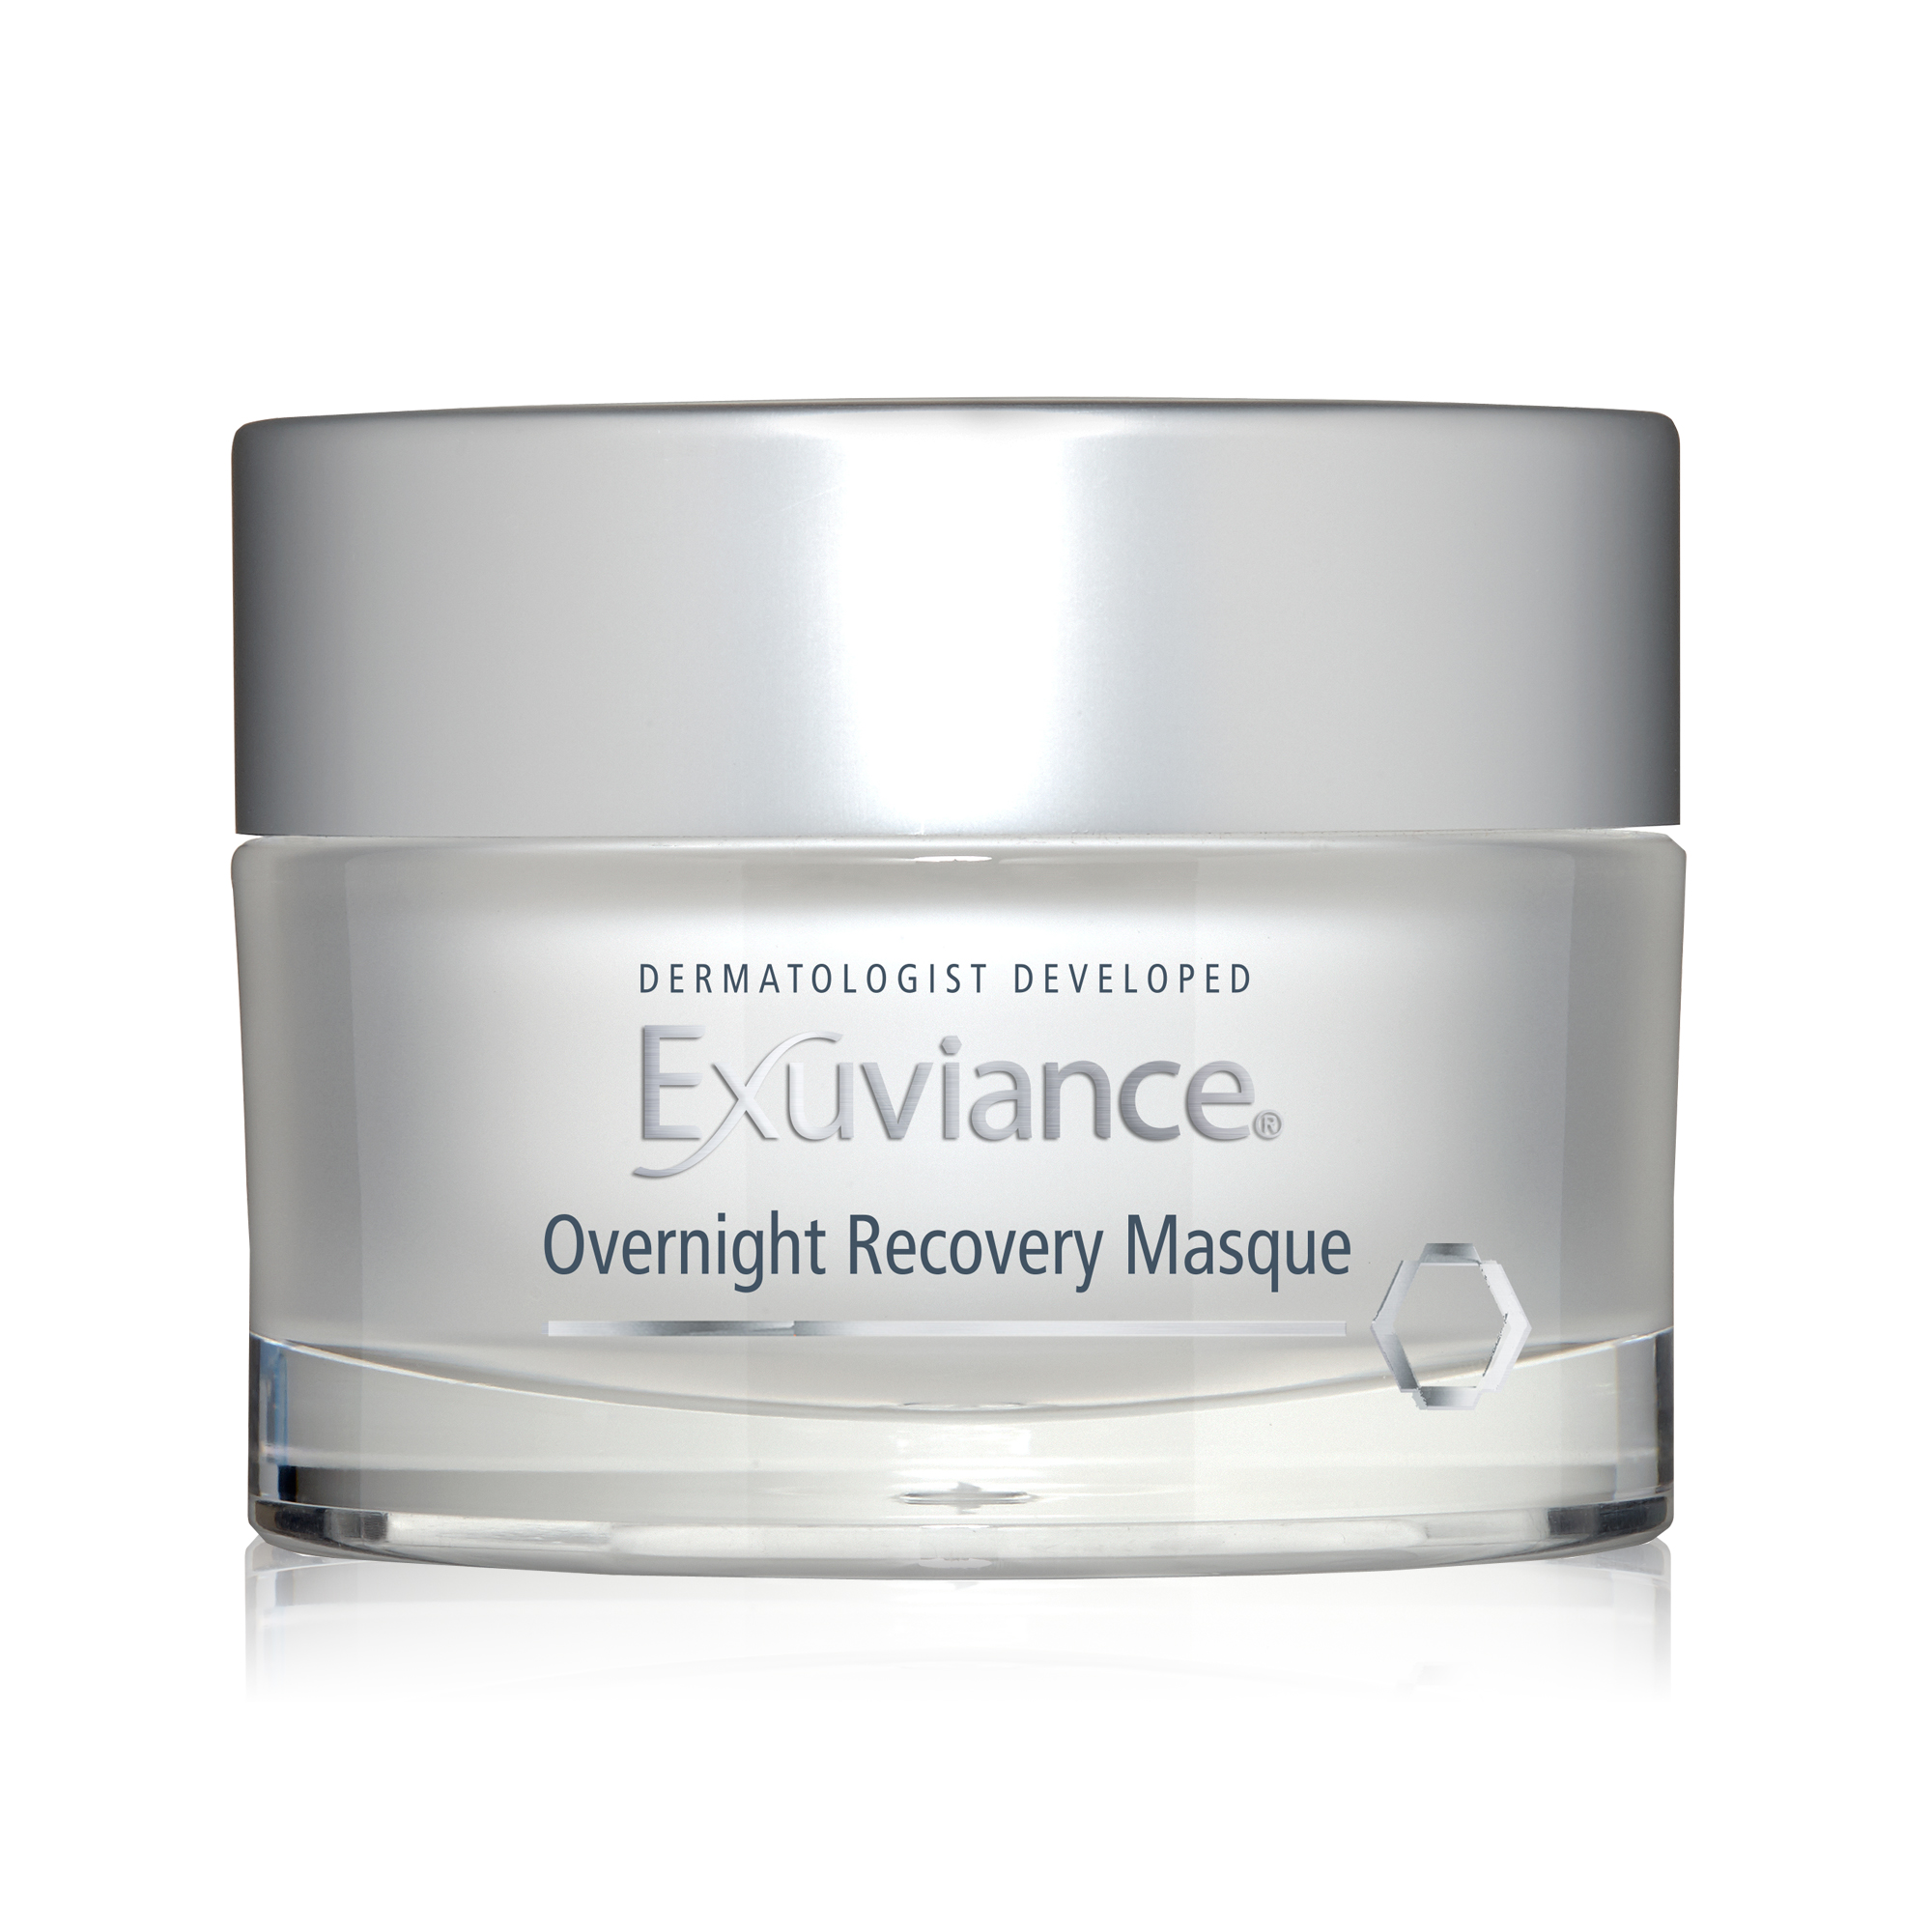 The Exuviance Overnight Recovery Masque is the Best Beauty Products I have Tried in a While!